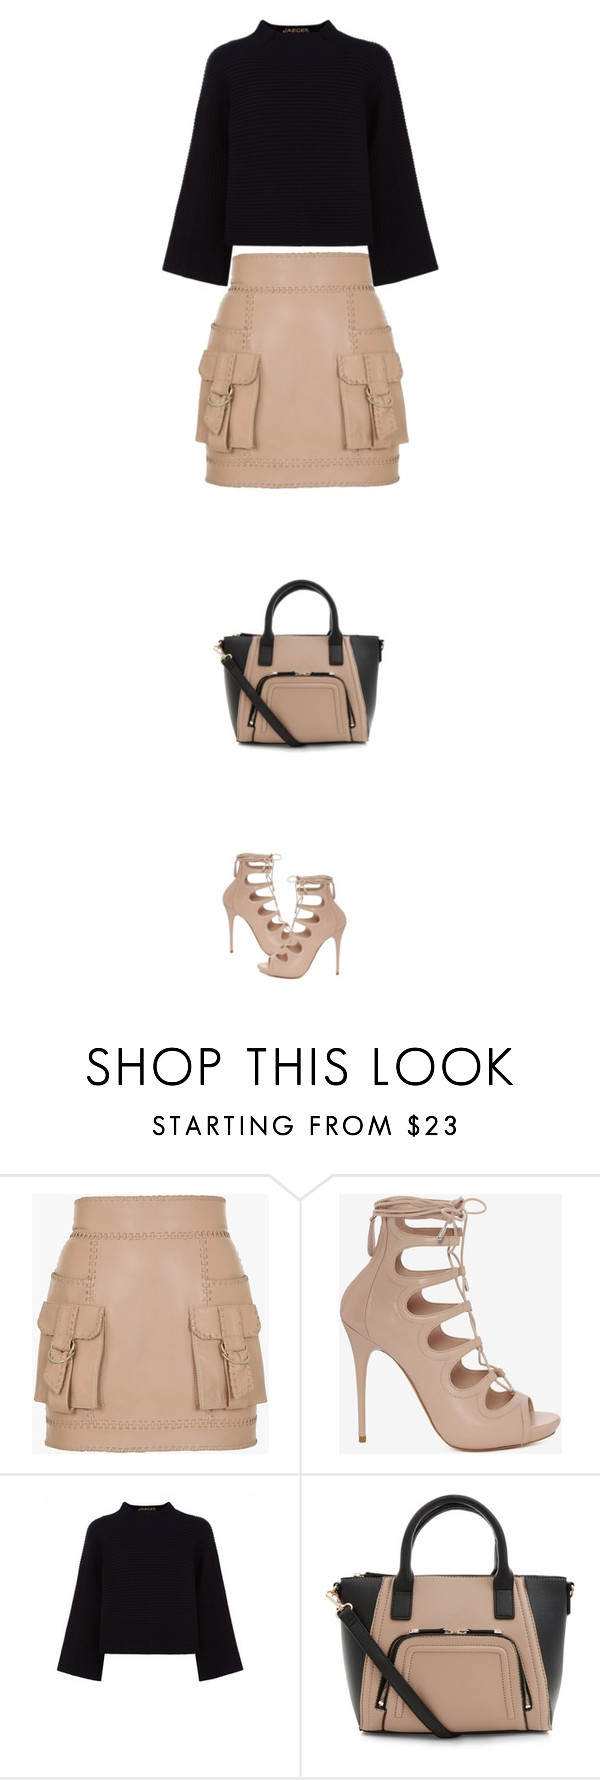 """""""lace up"""" by ecem1 ❤ liked on Polyvore featuring Balmain, Alexander McQueen, Jaeger and New Look"""